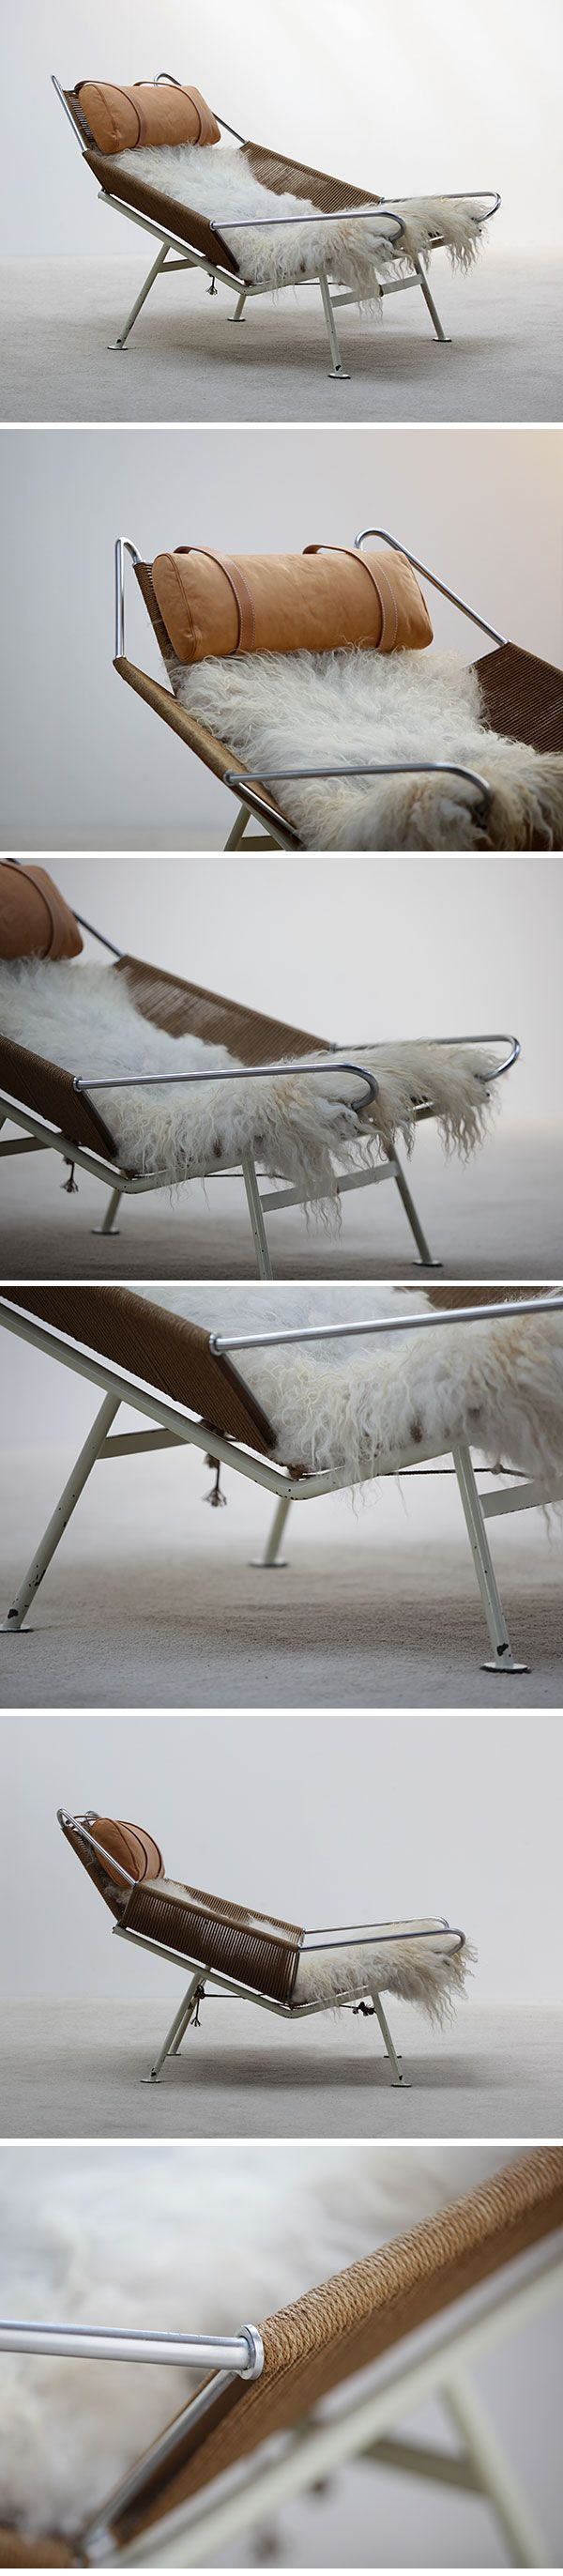 Relaxation. Hans Wegner's Flag Halyard Chair #modern #flaghalyard #design